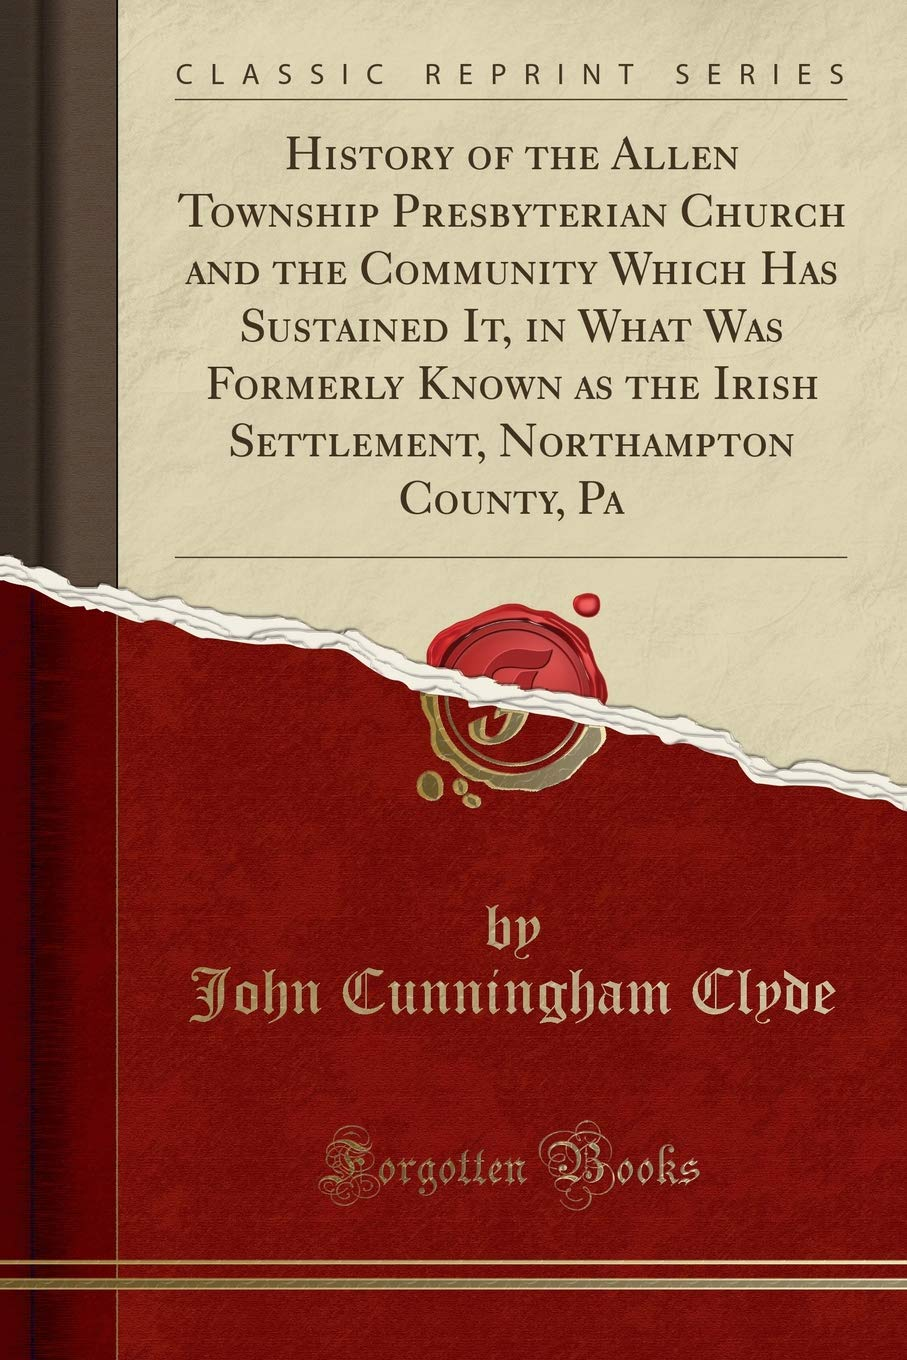 Download History of the Allen Township Presbyterian Church and the Community Which Has Sustained It, in What Was Formerly Known as the Irish Settlement, Northampton County, Pa (Classic Reprint) pdf epub